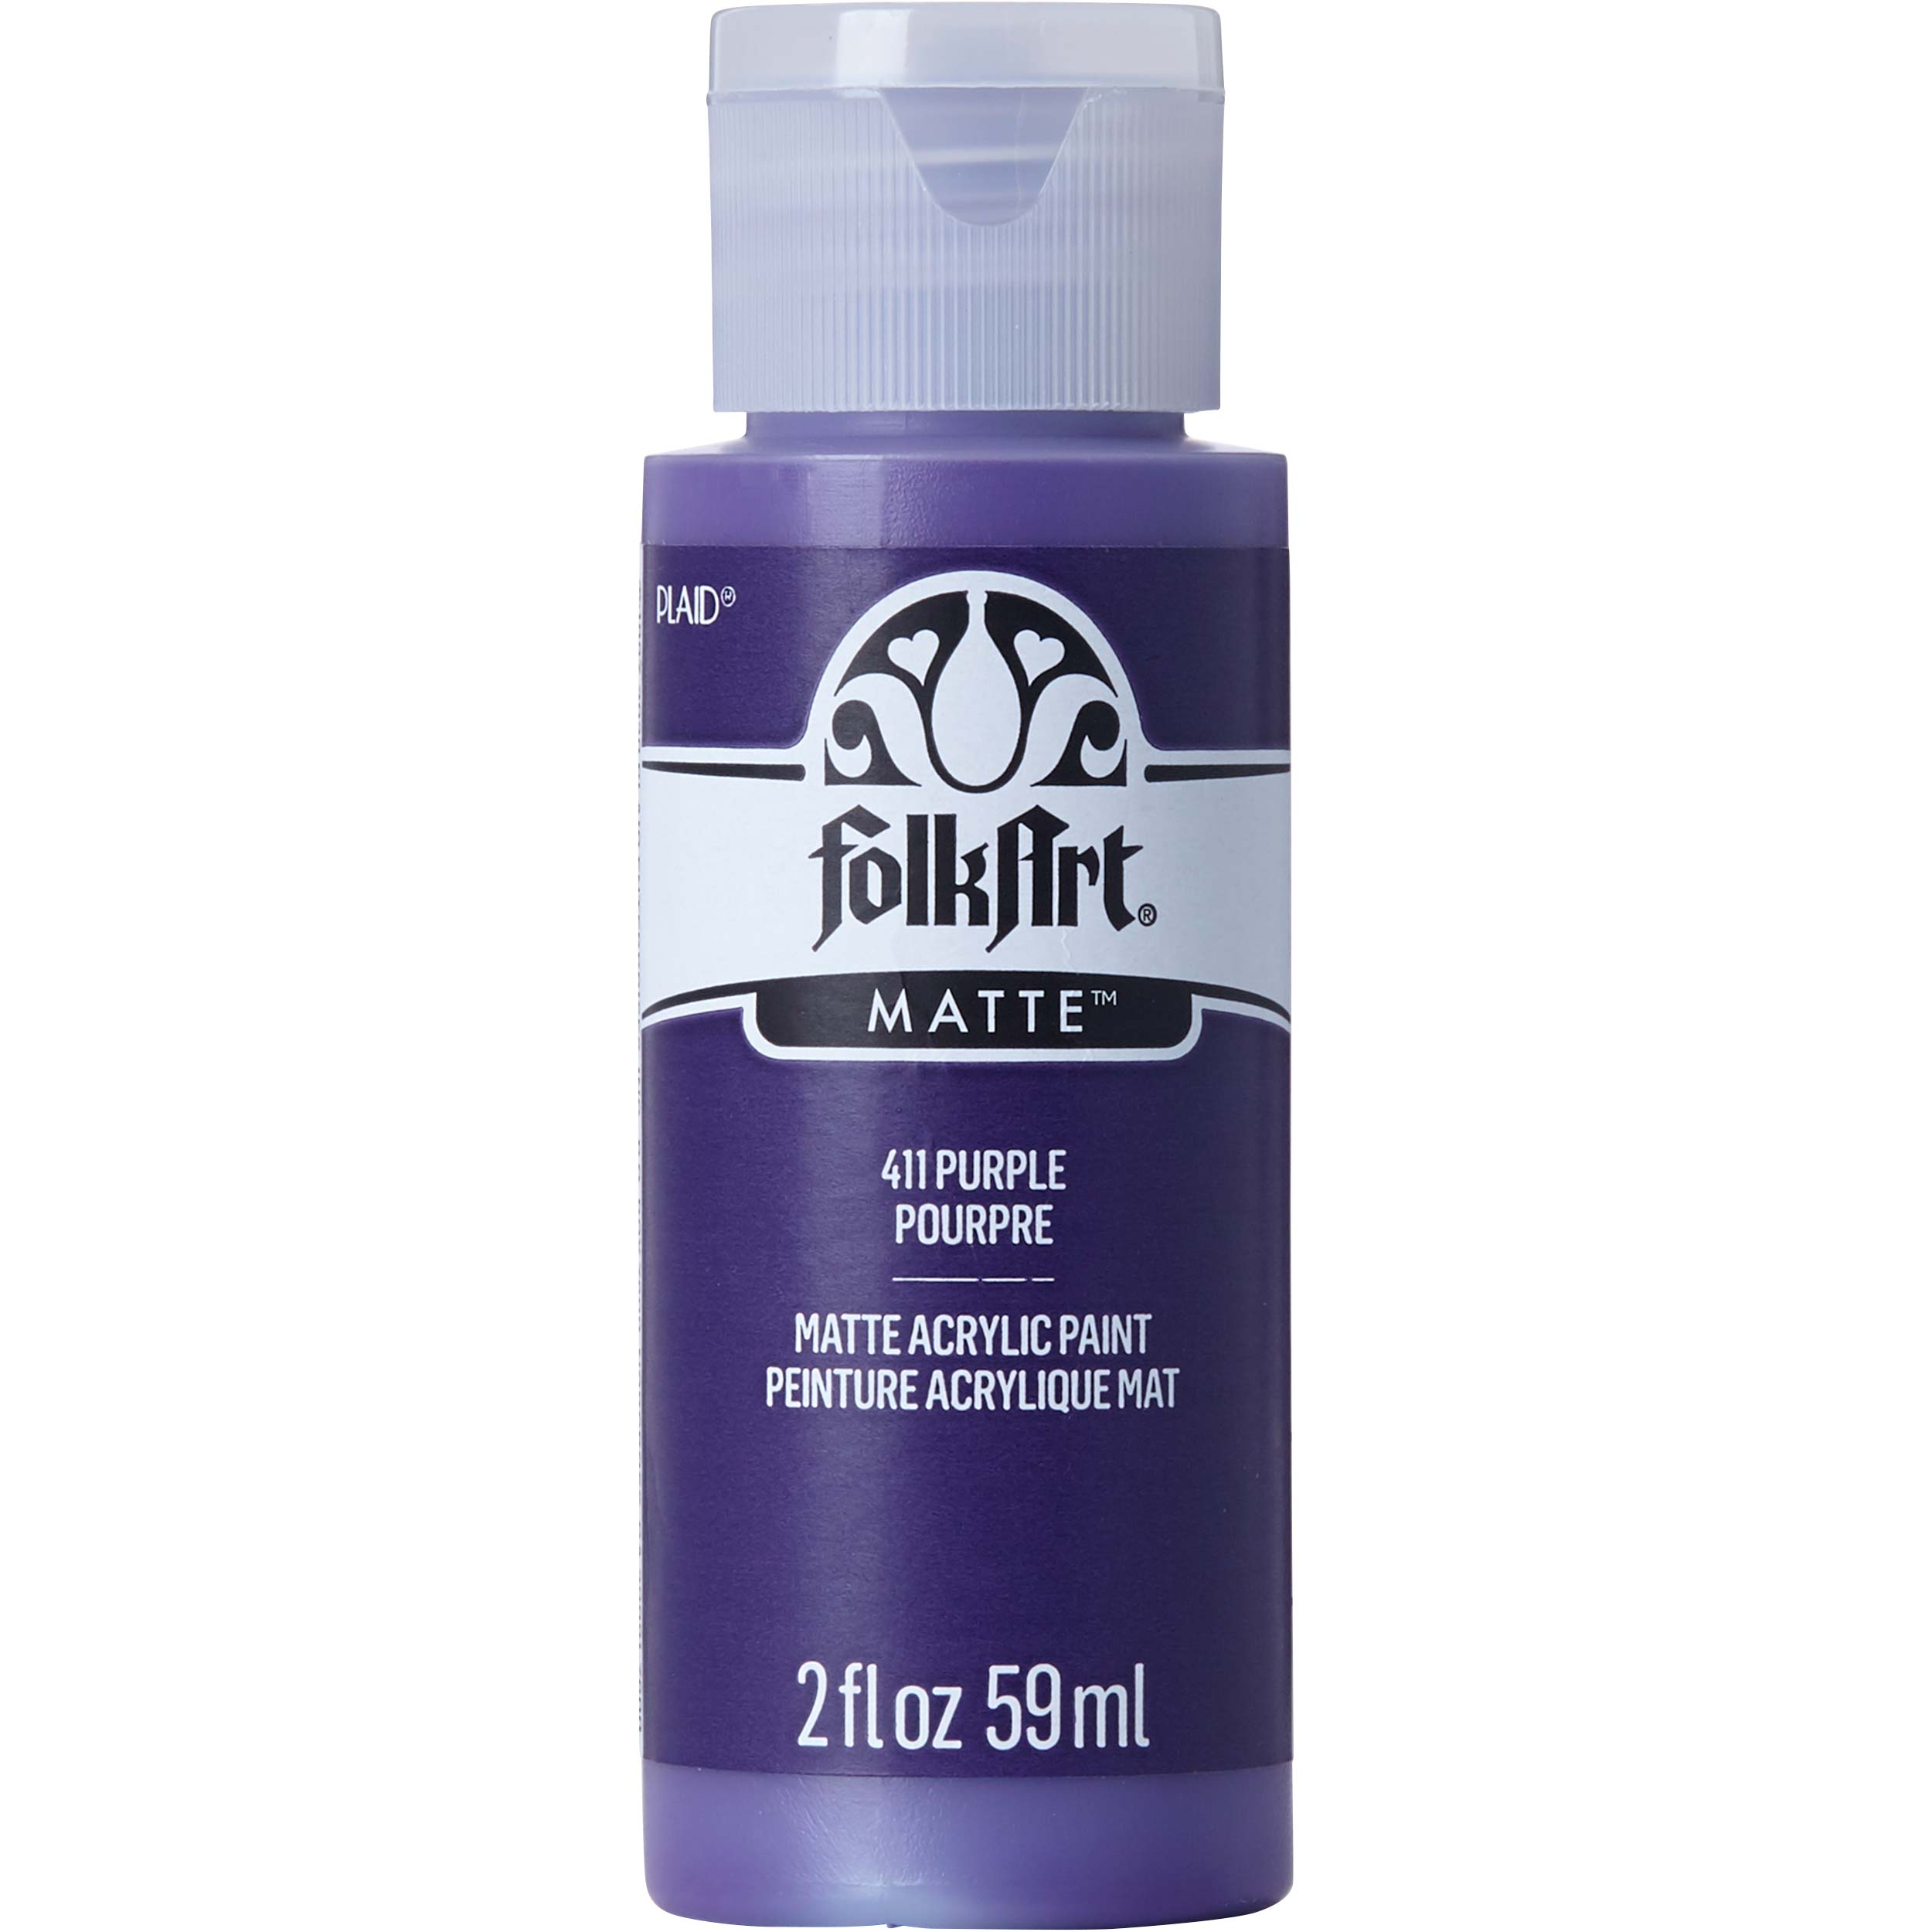 FolkArt ® Acrylic Colors - Purple, 2 oz. - 411